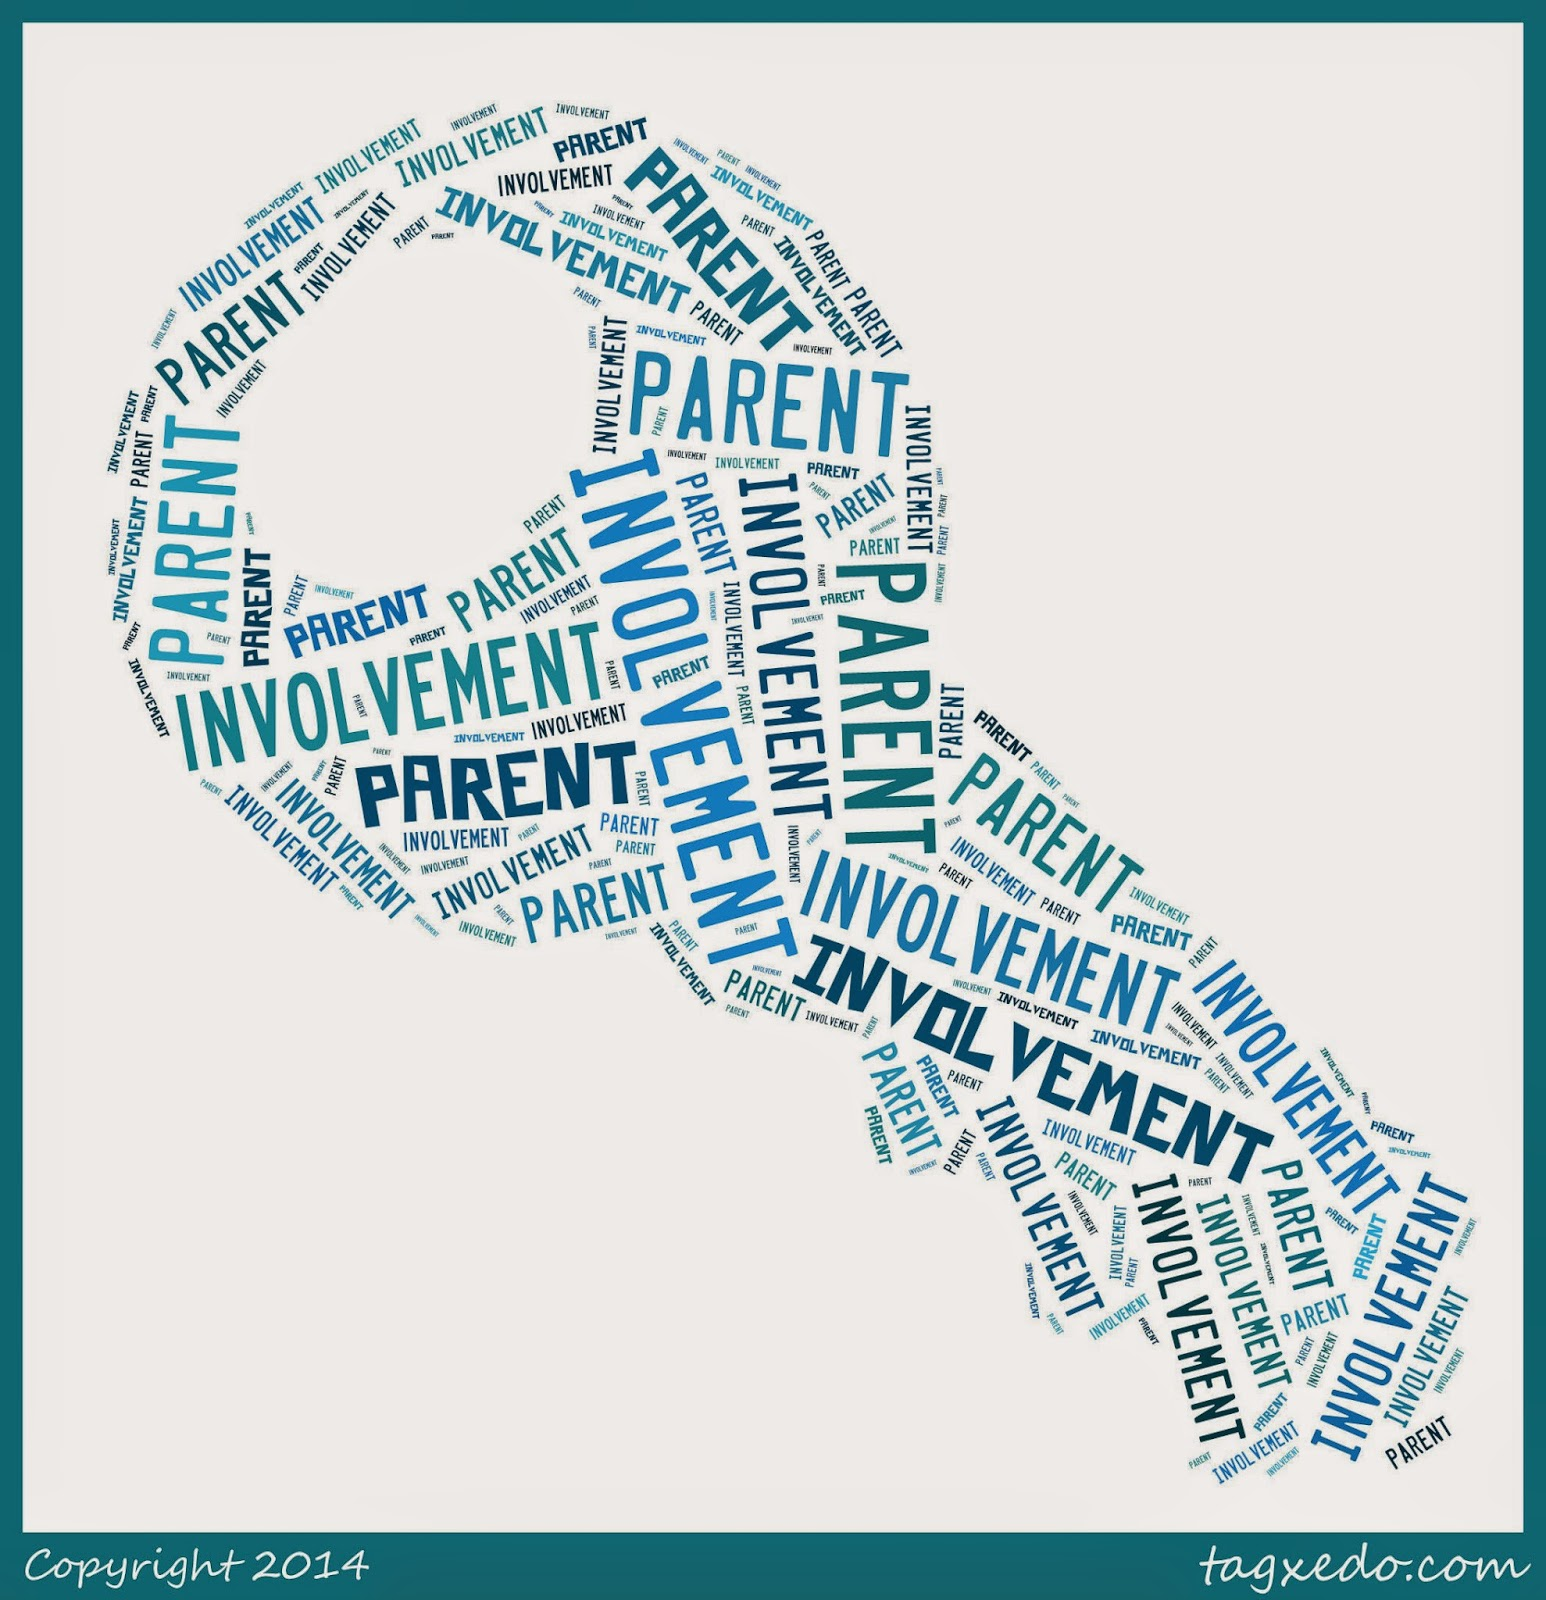 definition of key terms parental involvement education essay Much research exists about the importance of parent involvement in education the research overwhelmingly indicates that parent involvement not only positively affects student achievement, it contributes to higher quality education and better performance of schools overall.